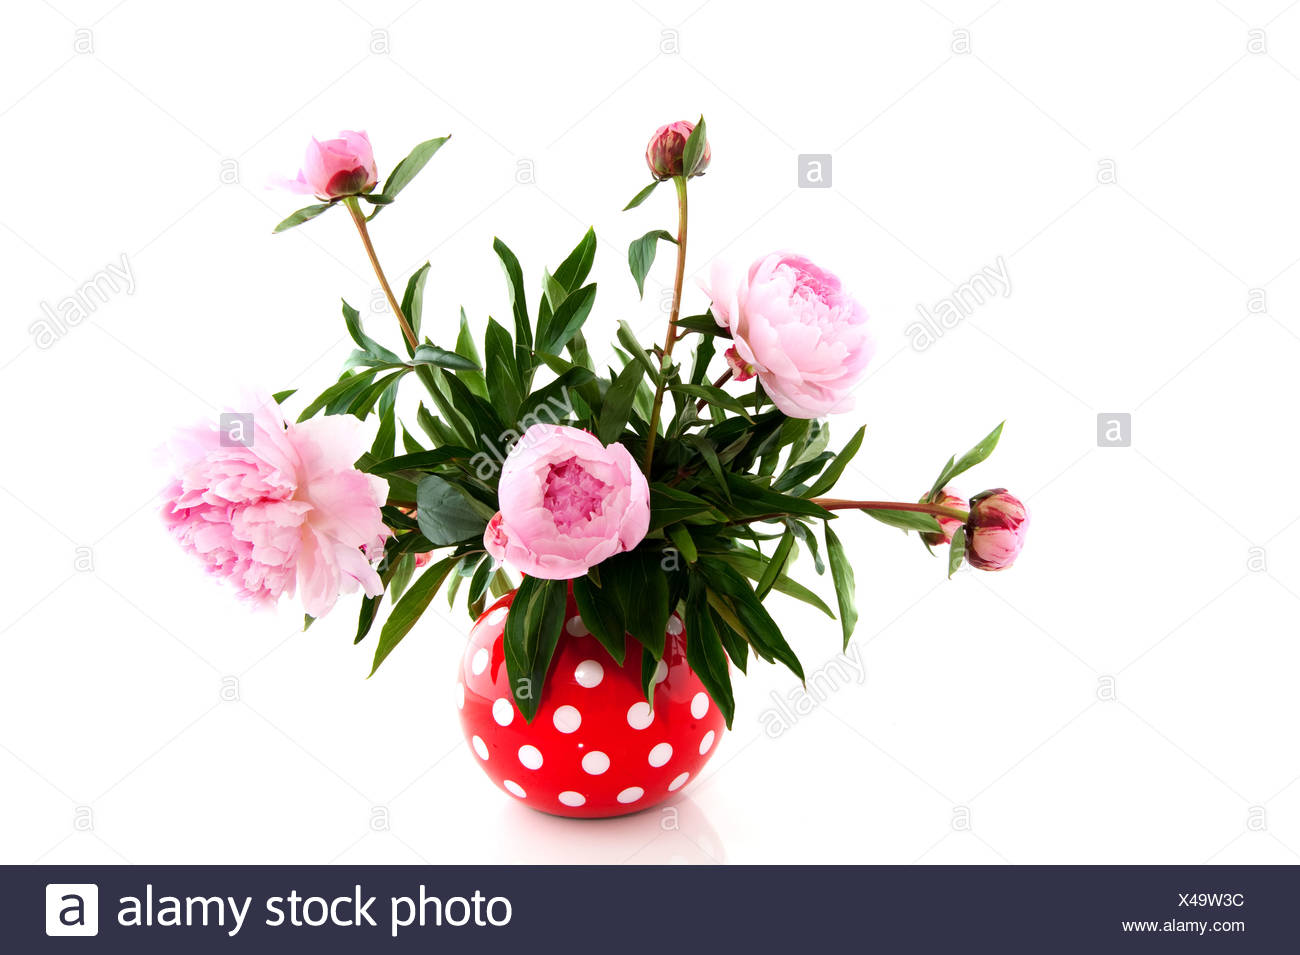 Bouquet With Common Peony Stock Photos & Bouquet With Common Peony ...